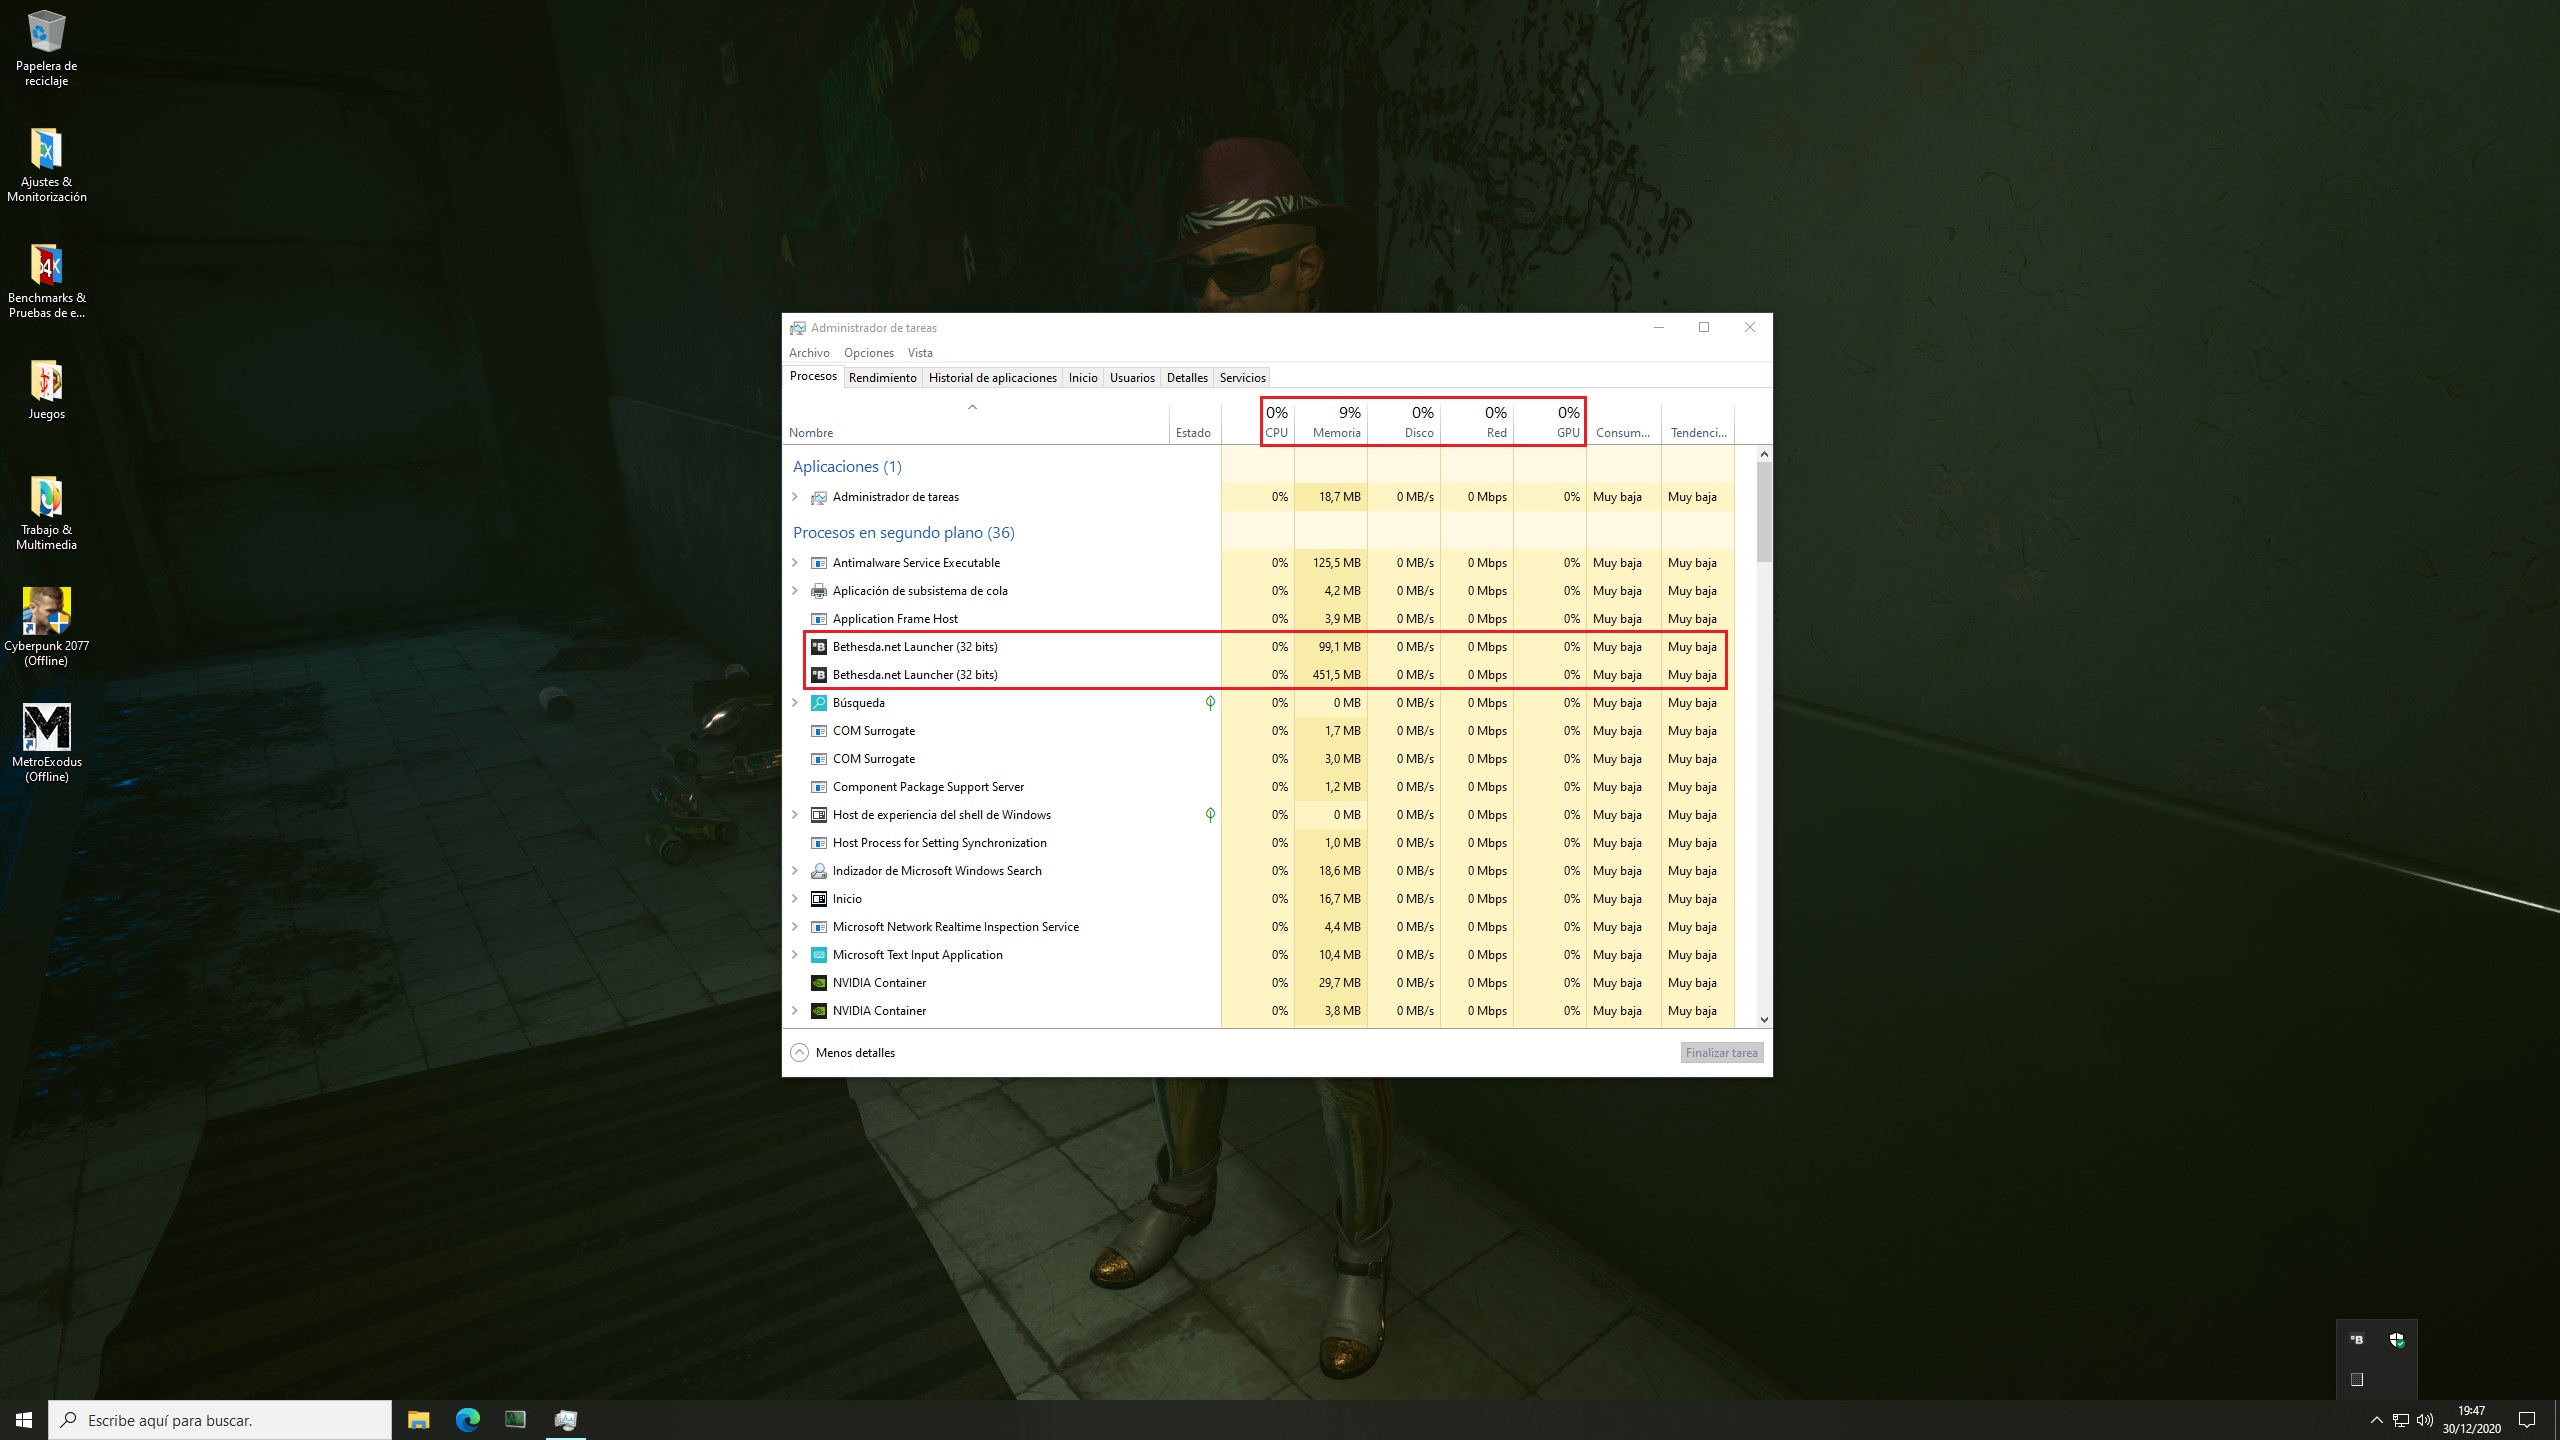 PC Game Launchers Efficiency – Bethesda.net Launcher on idle state – Windows 10 Task Manager Processes Tab